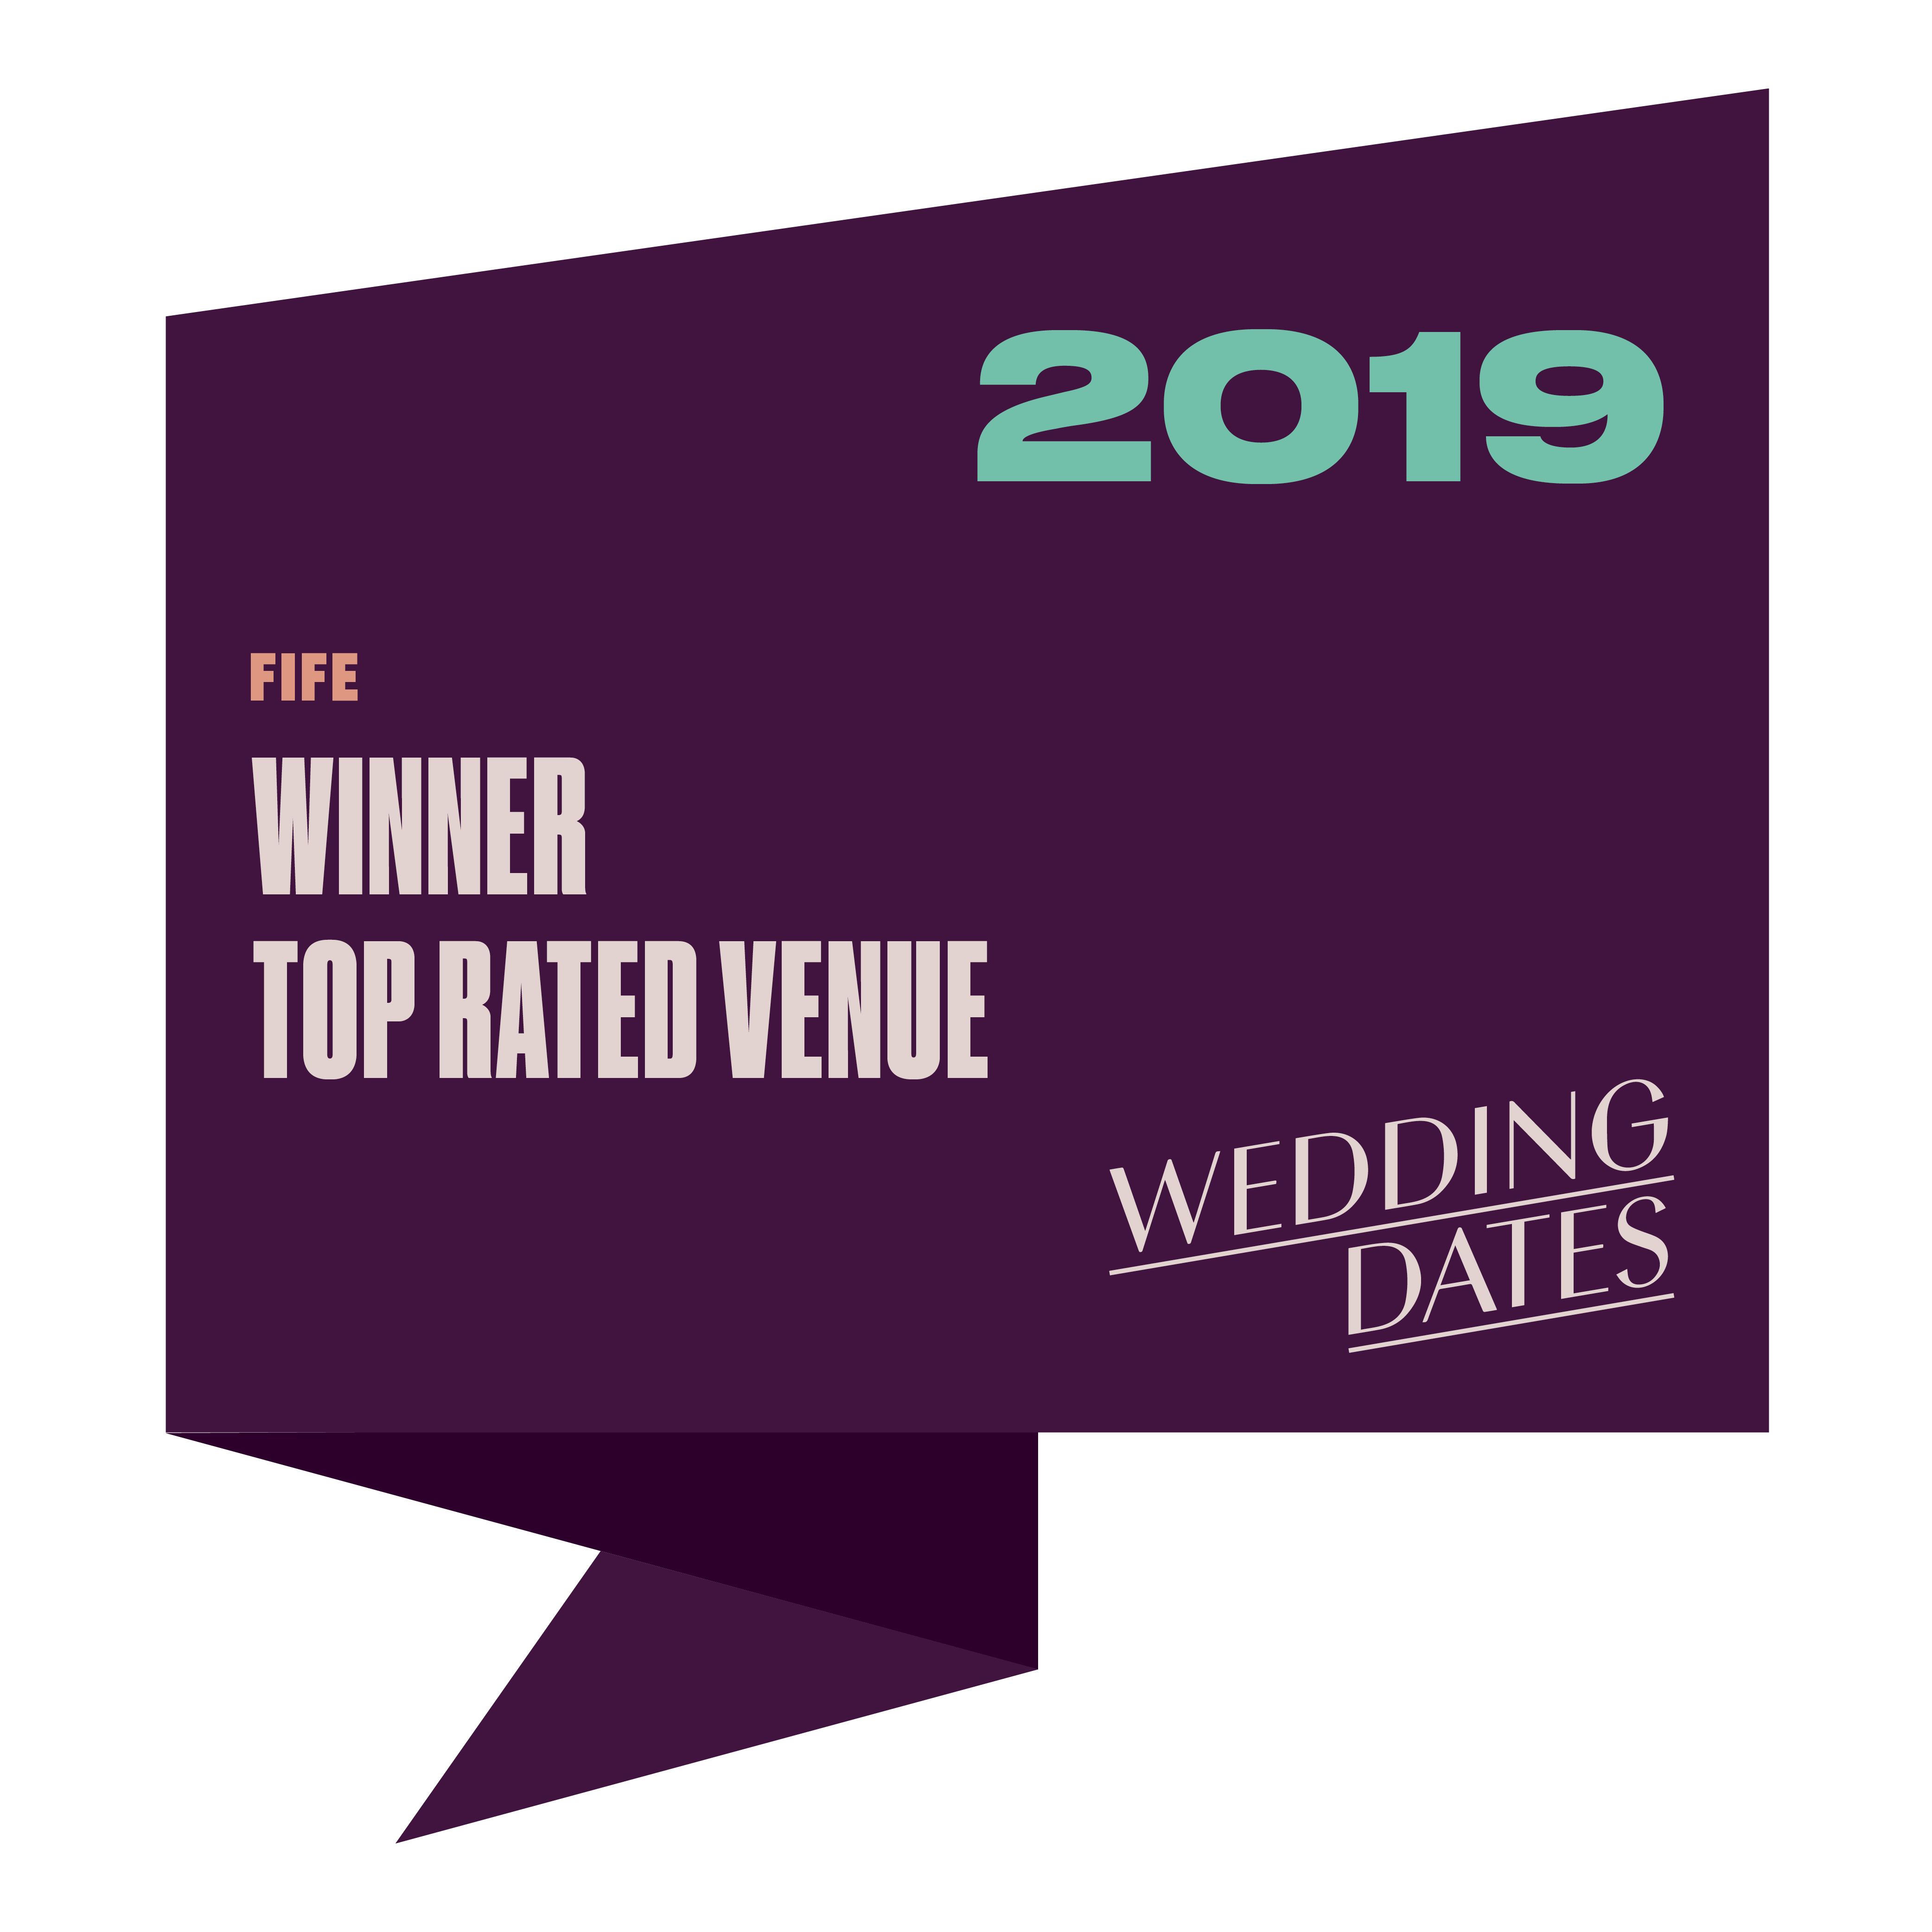 Top Rated Wedding Venues in Fife 2019